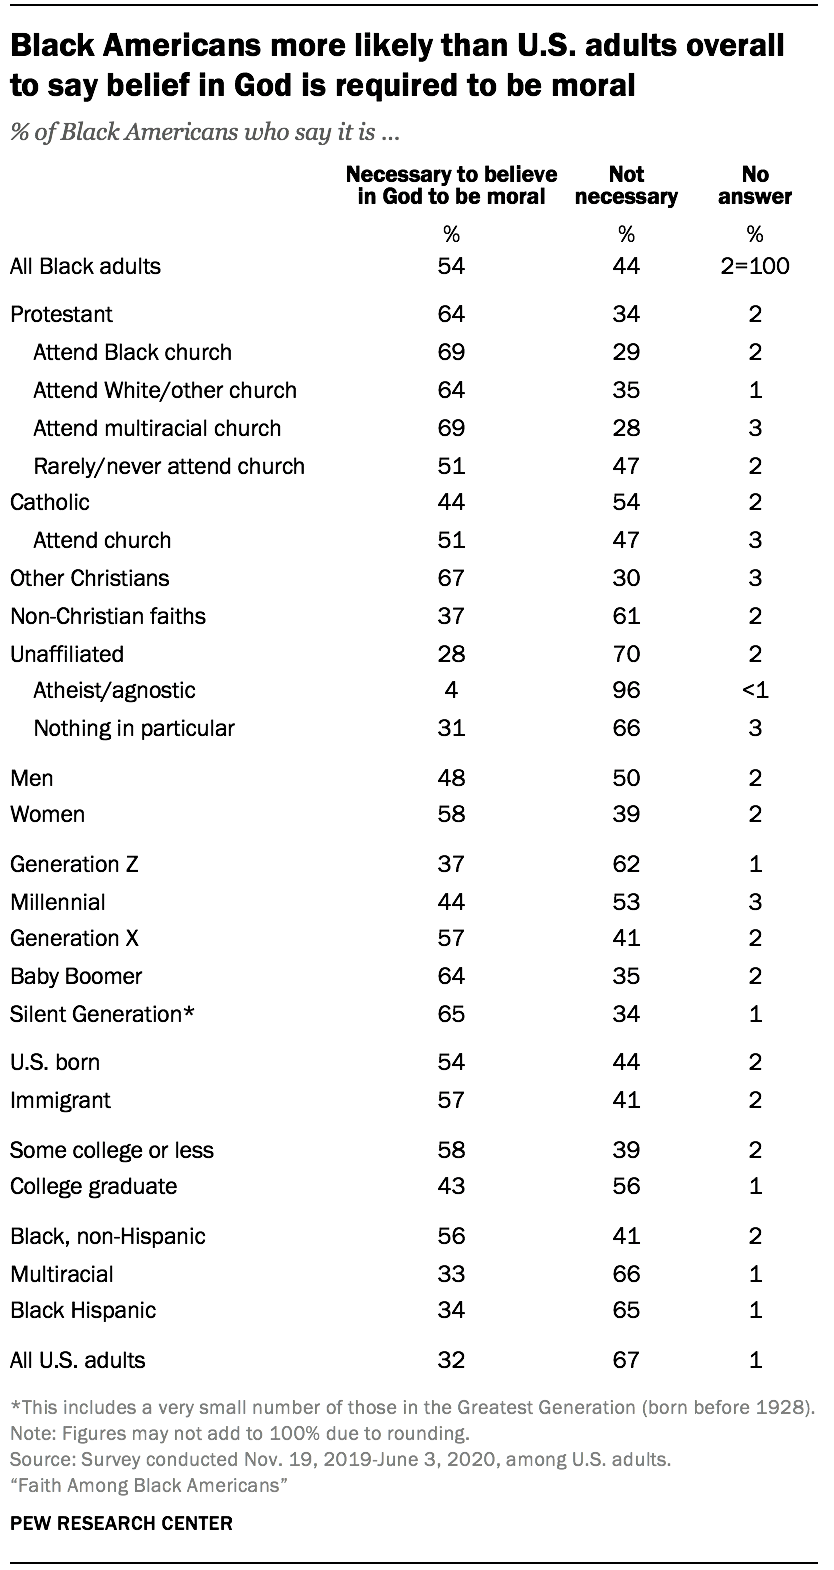 Black Americans more likely than U.S. adults overall to say belief in God is required to be moral